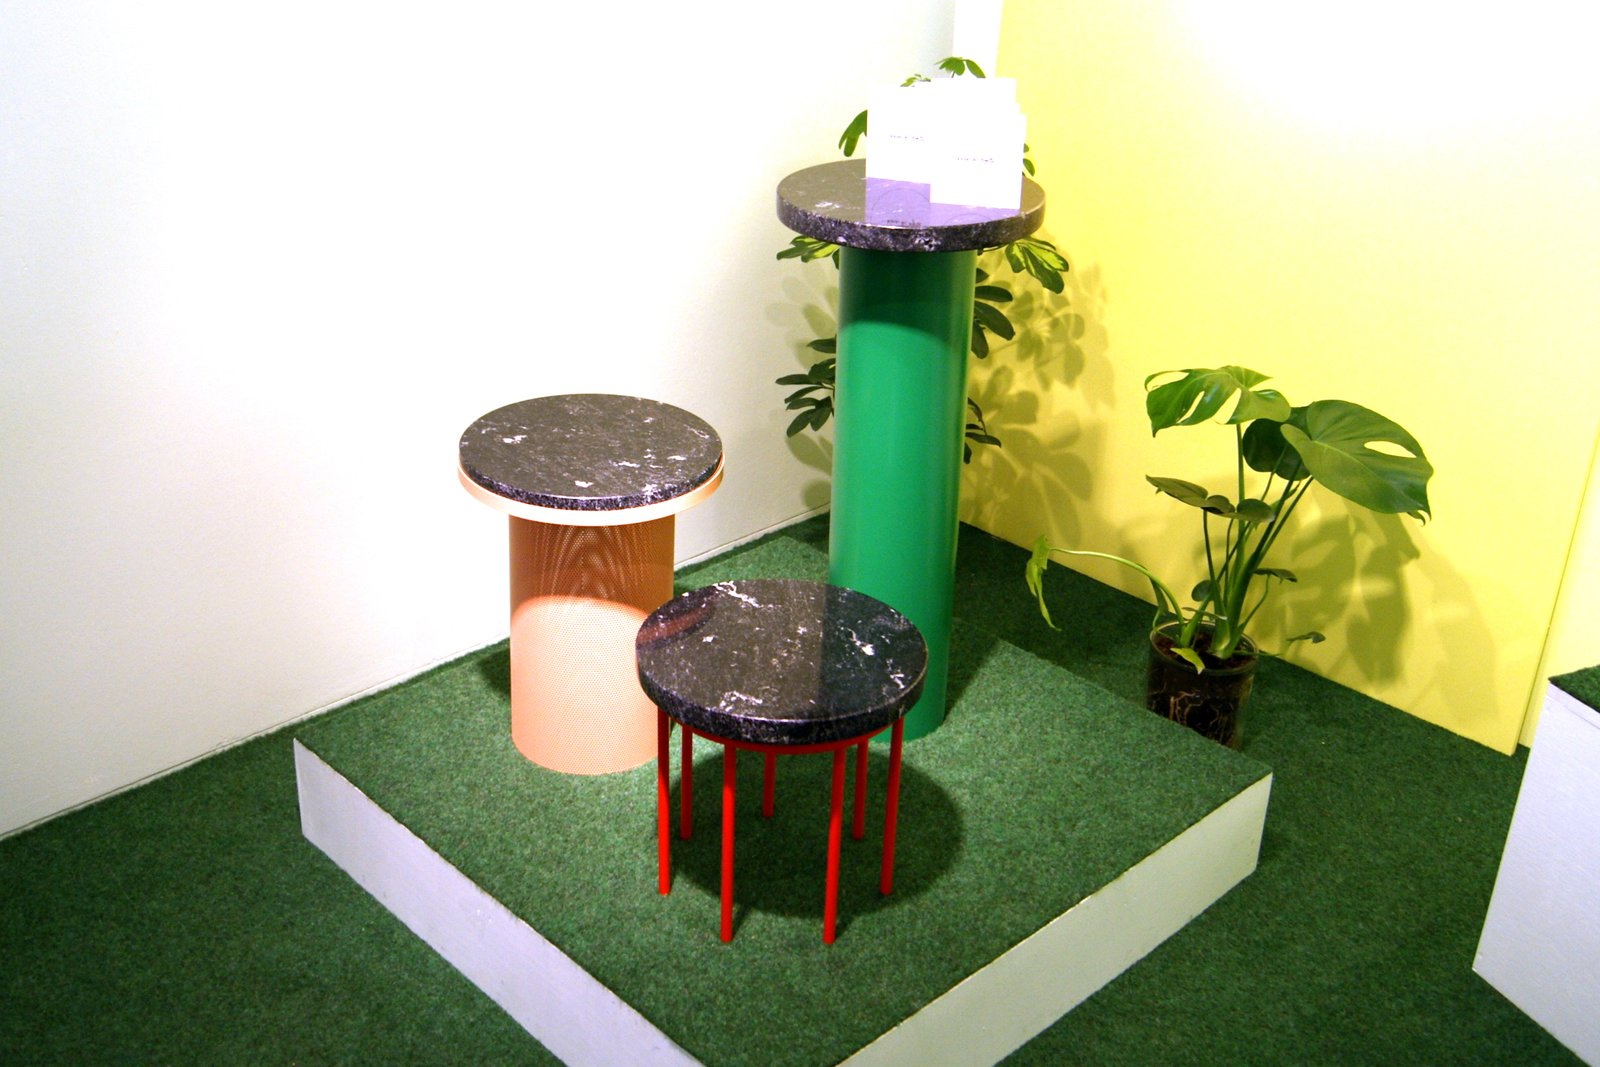 More of the Memphis-inspired collection of pedestal tables in granite and stainless steel by Vera & Kyte.  Key Trends from 2013 London Design Festival by Ali Morris